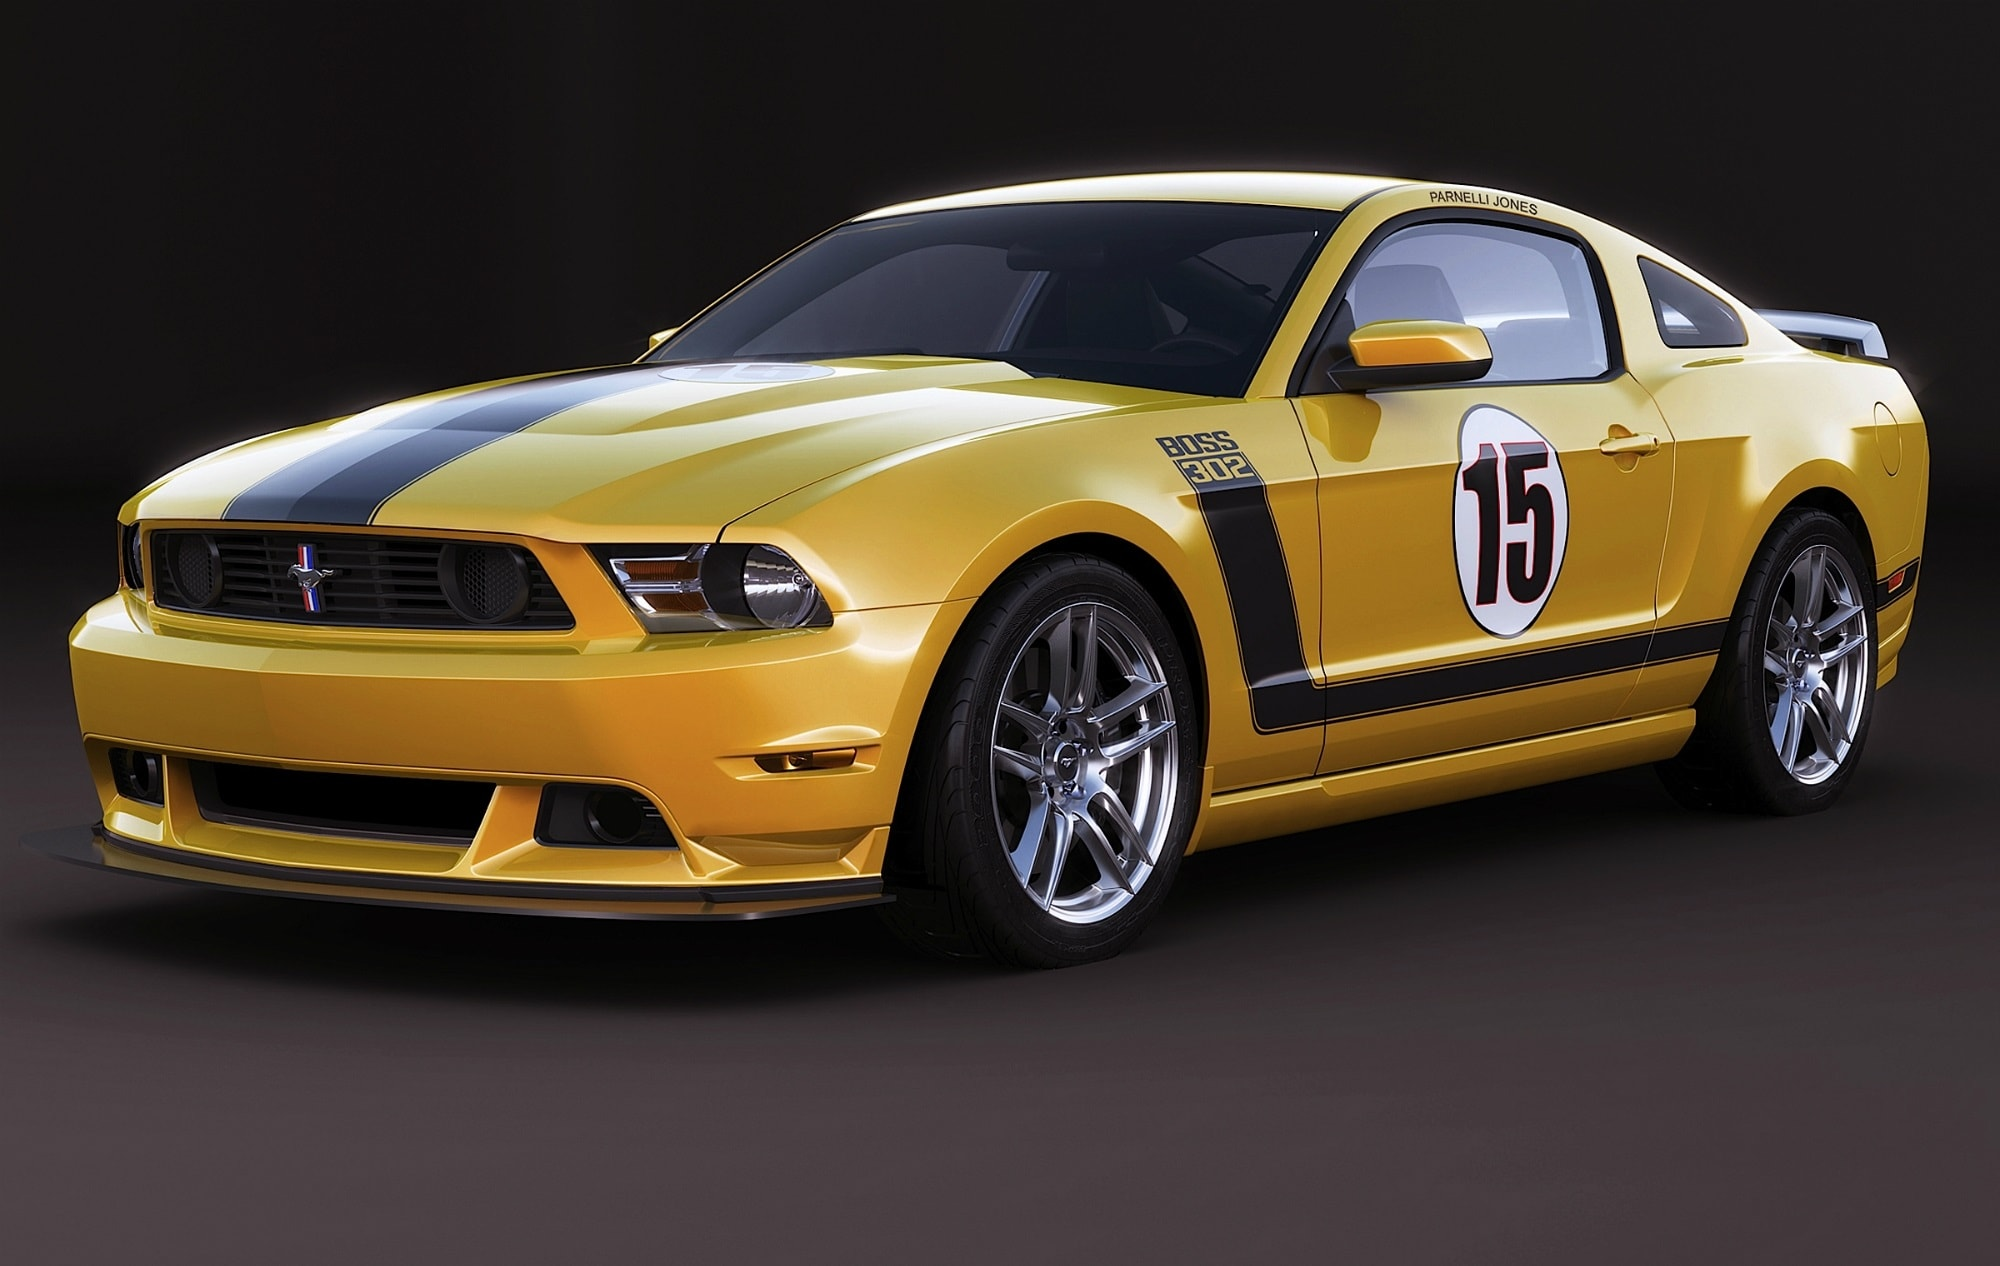 Ford Mustang Boss 302 Laguna Seca Background